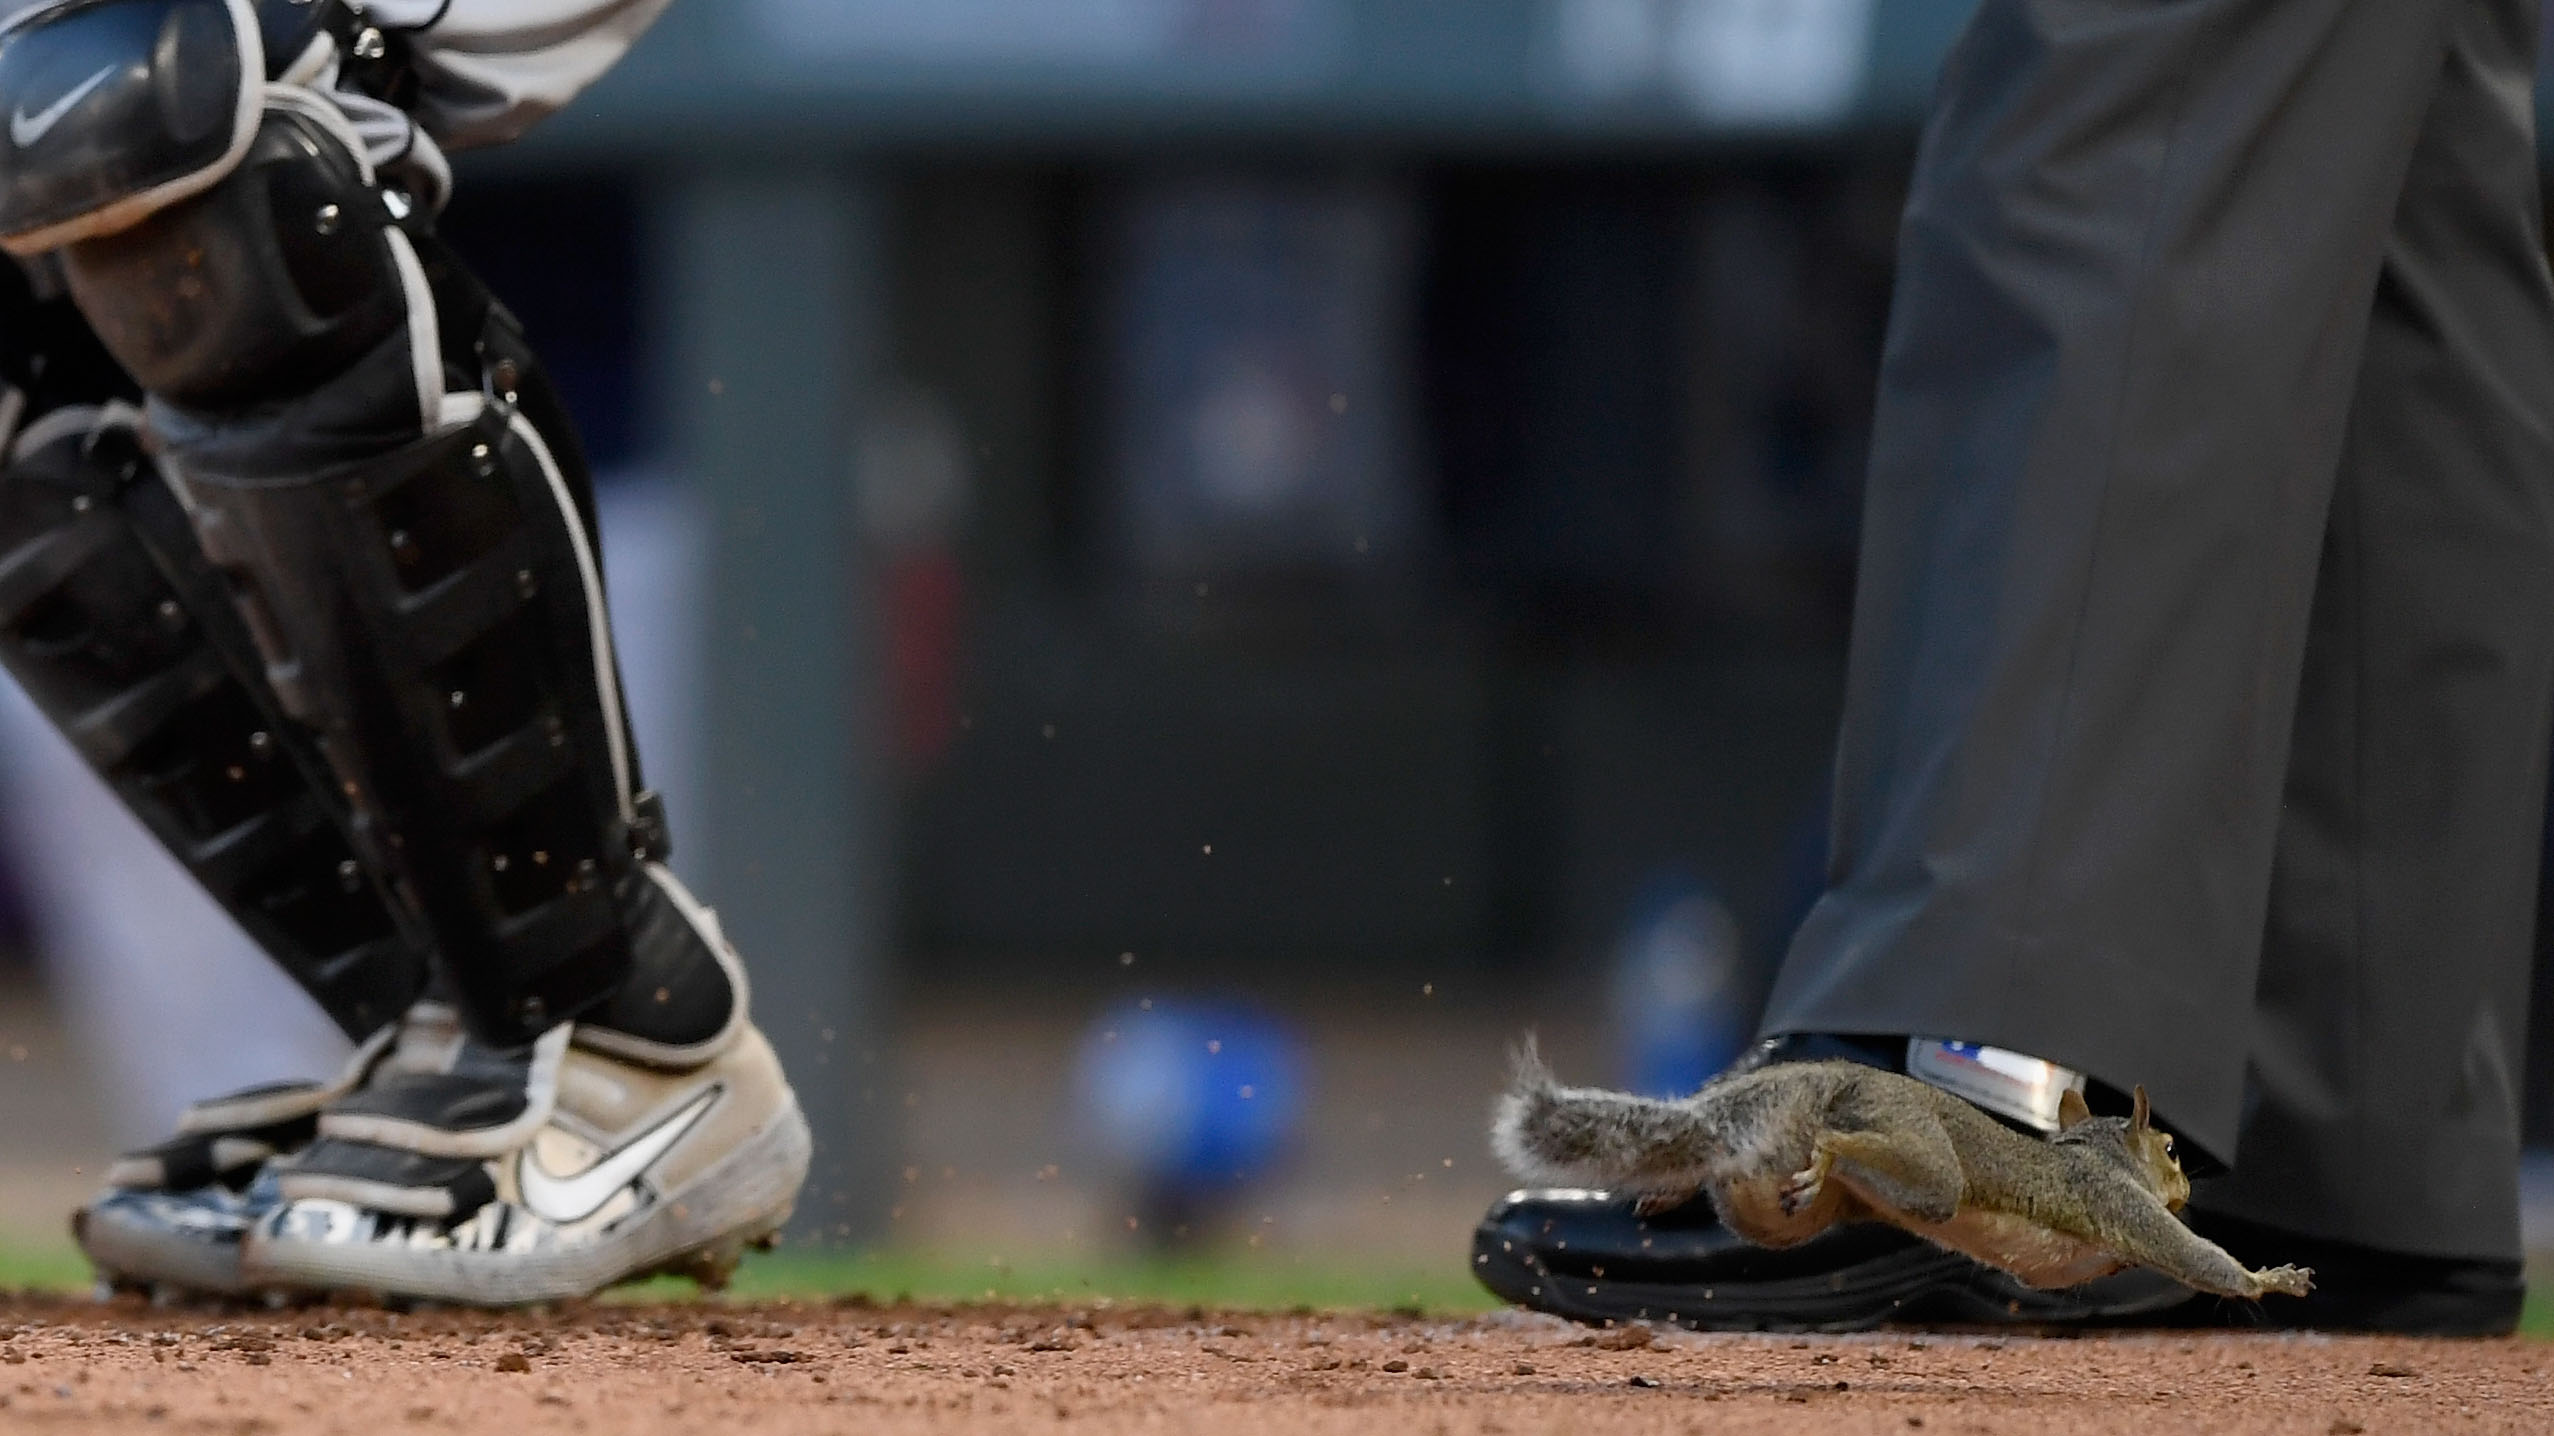 Twins squirrel runs through Max Kepler's legs (video)